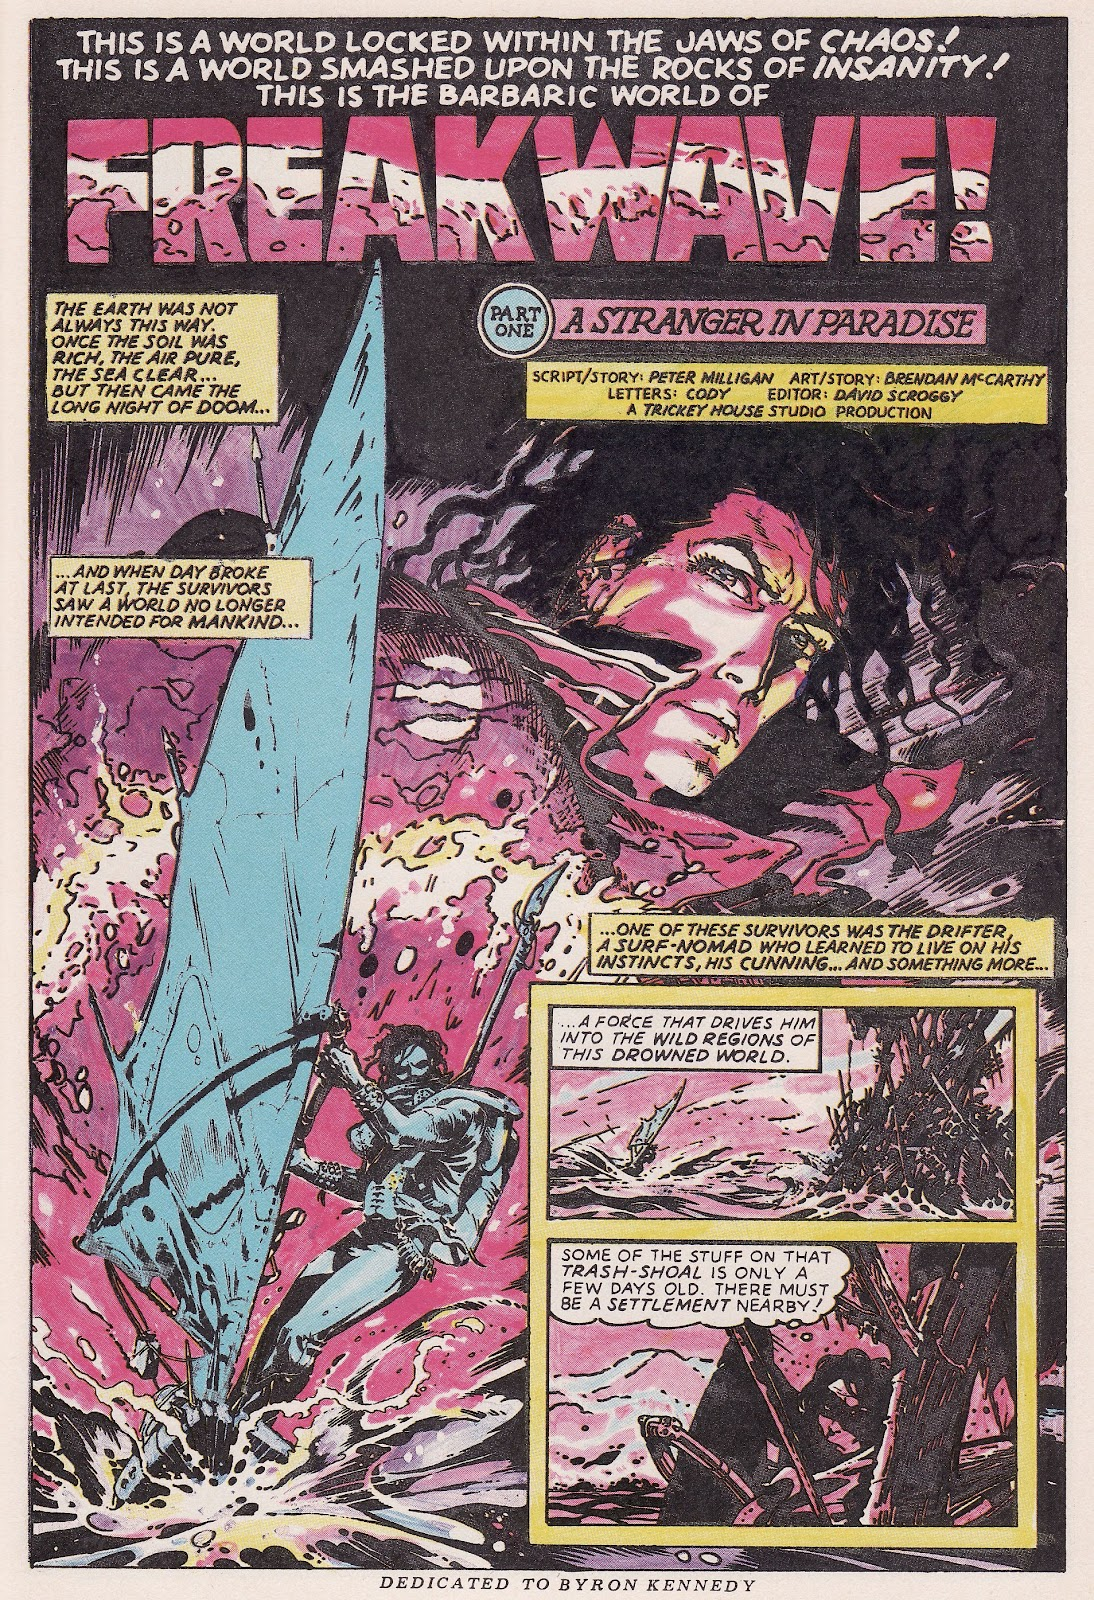 Freakwave, the comic whose name I could not recall on the show…